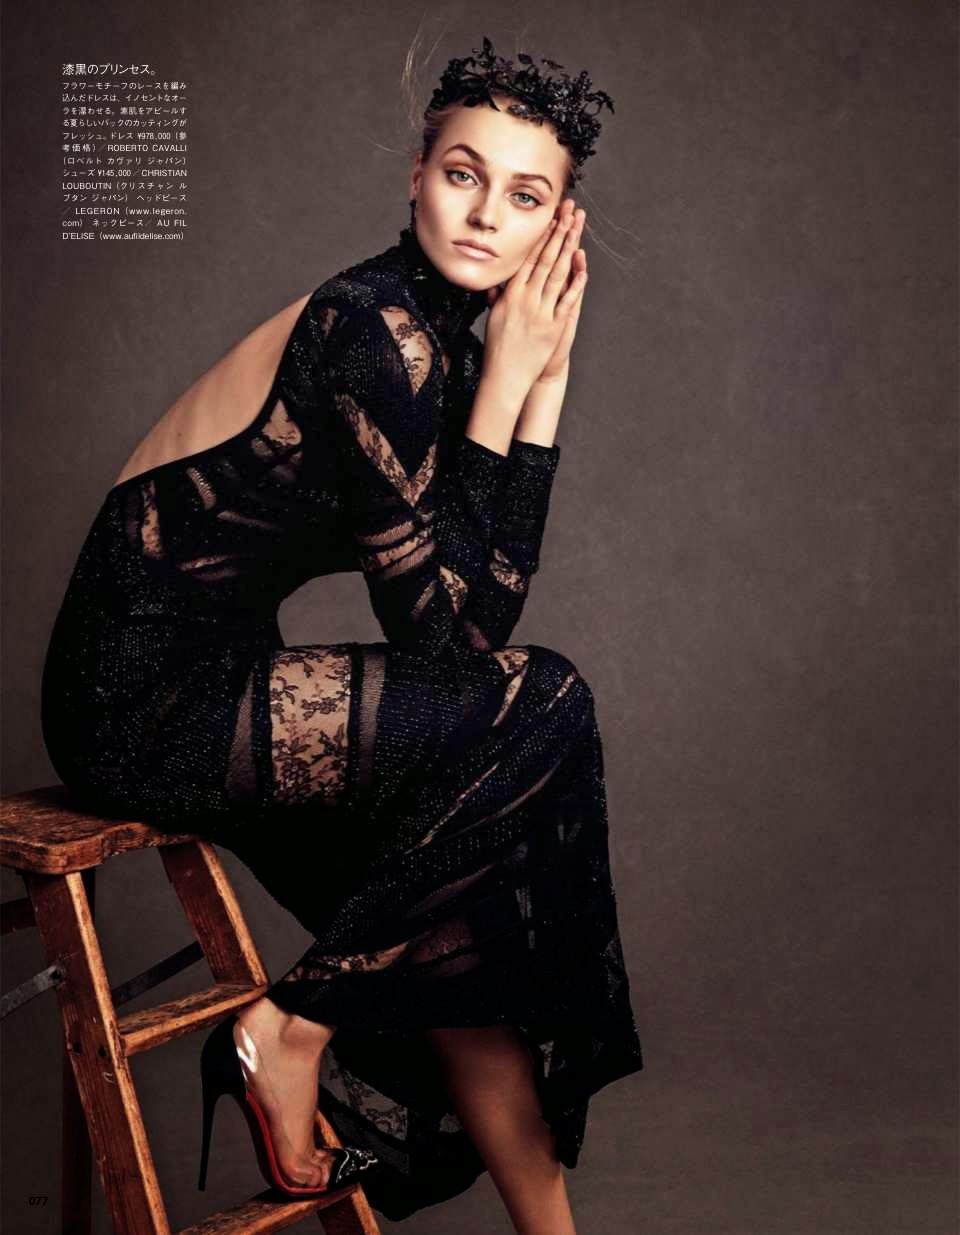 Anna Jagodzinska by Andreas Sjodin for Vogue Japan July 2014